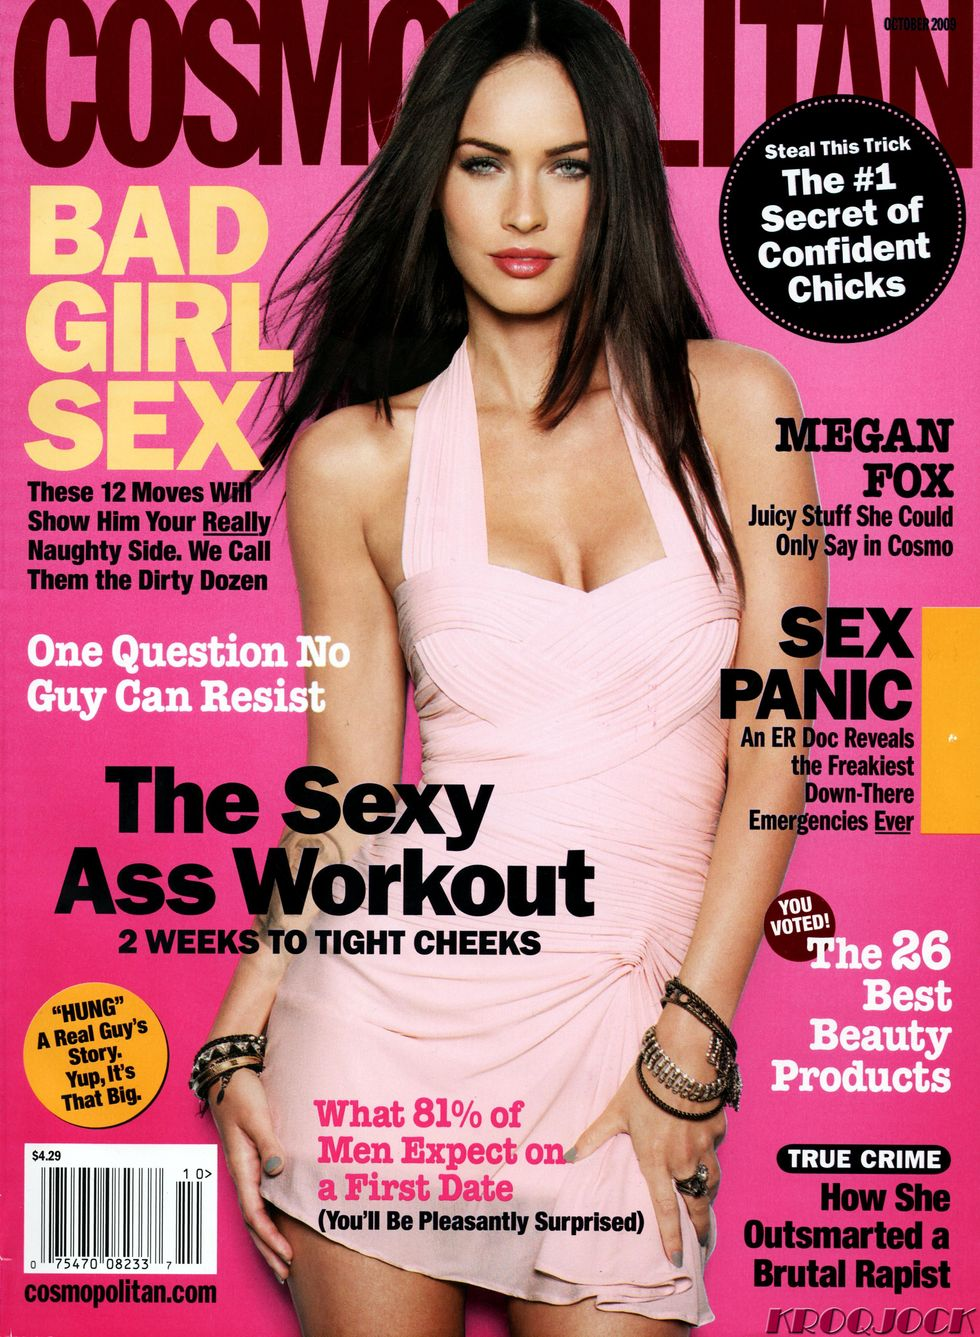 megan-fox-cosmopolitan-magazine-october-2009-01